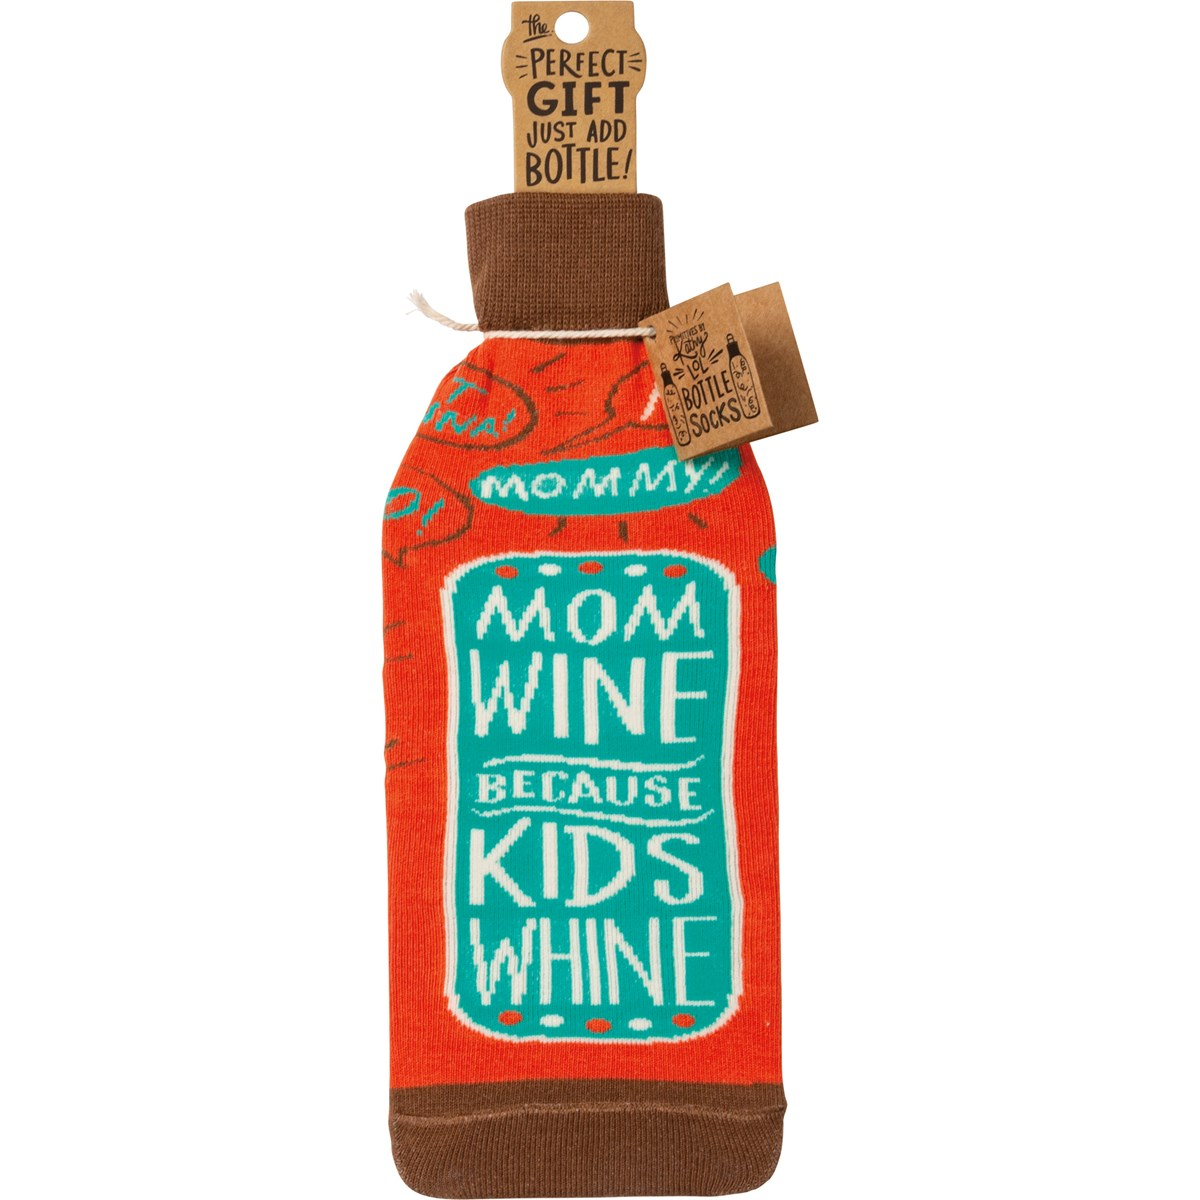 "Bottle Sock - Mom Wine Because Kids Whine - 3.50"" x 11.25"", Fits 750mL to 1.5L bottles - Cotton, Nylon, Spandex"